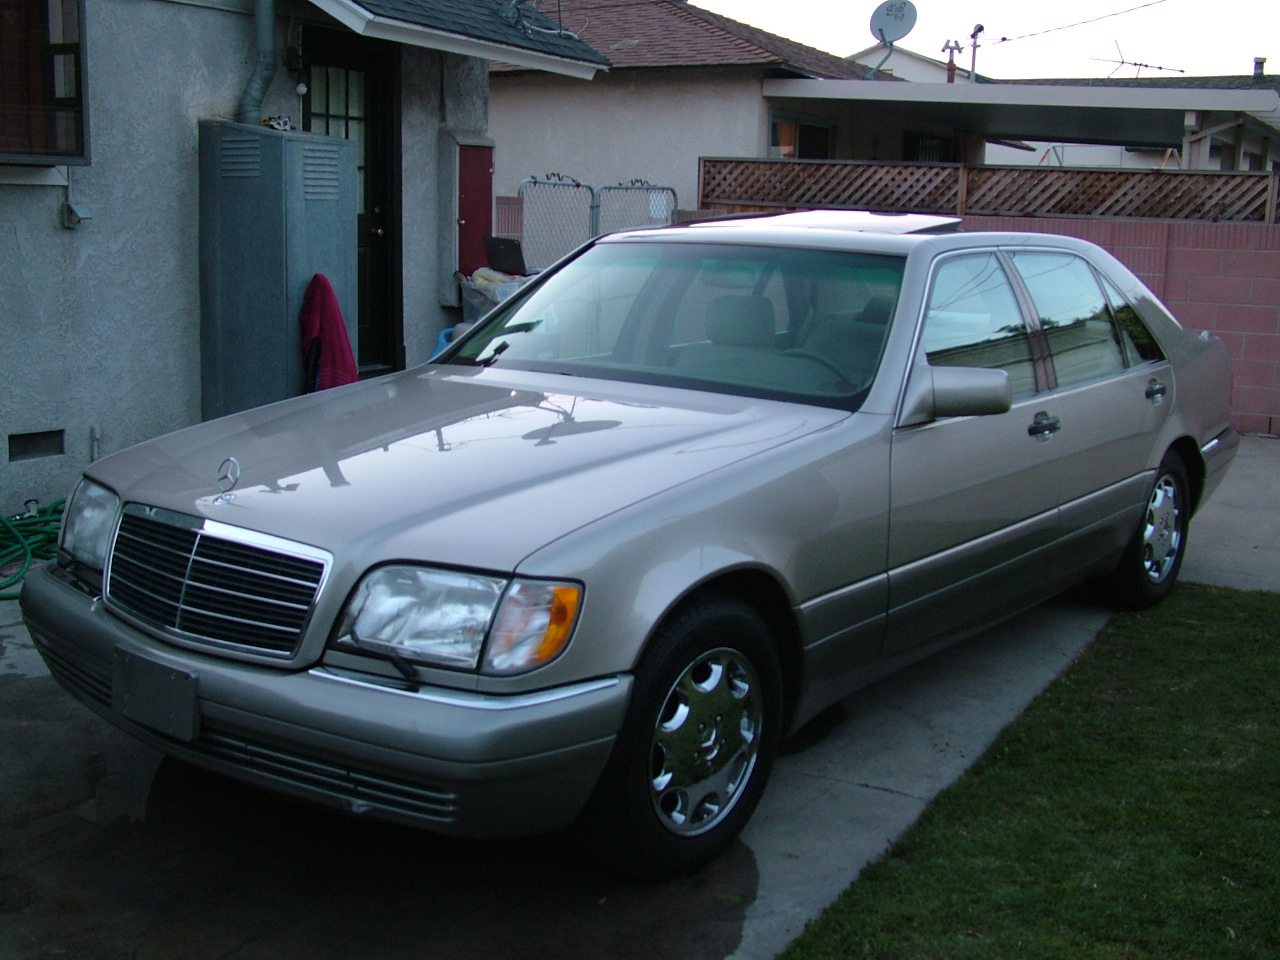 1995 mercedes benz s class other pictures cargurus for 1995 mercedes benz s class